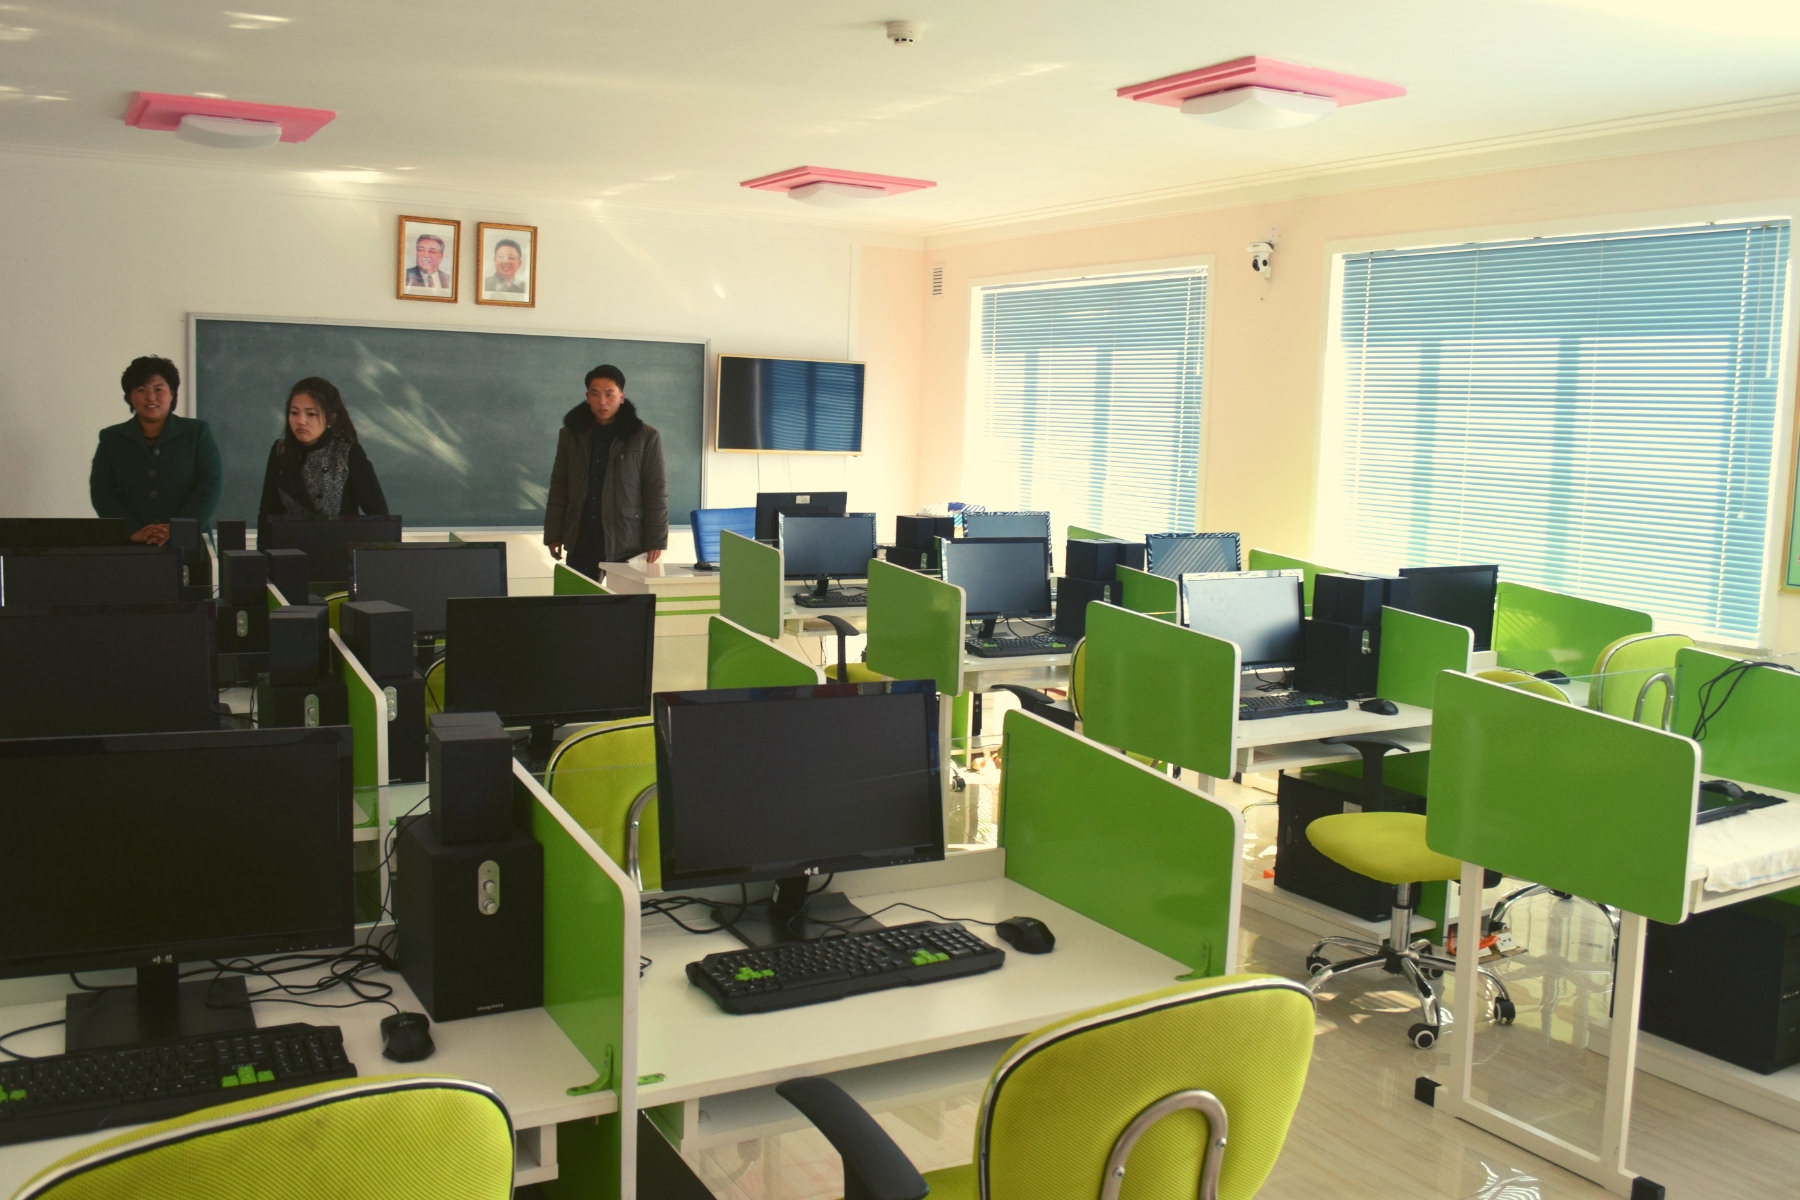 Computer room in an orphanage in North Korea (DPRK). Visit arranged by KTG